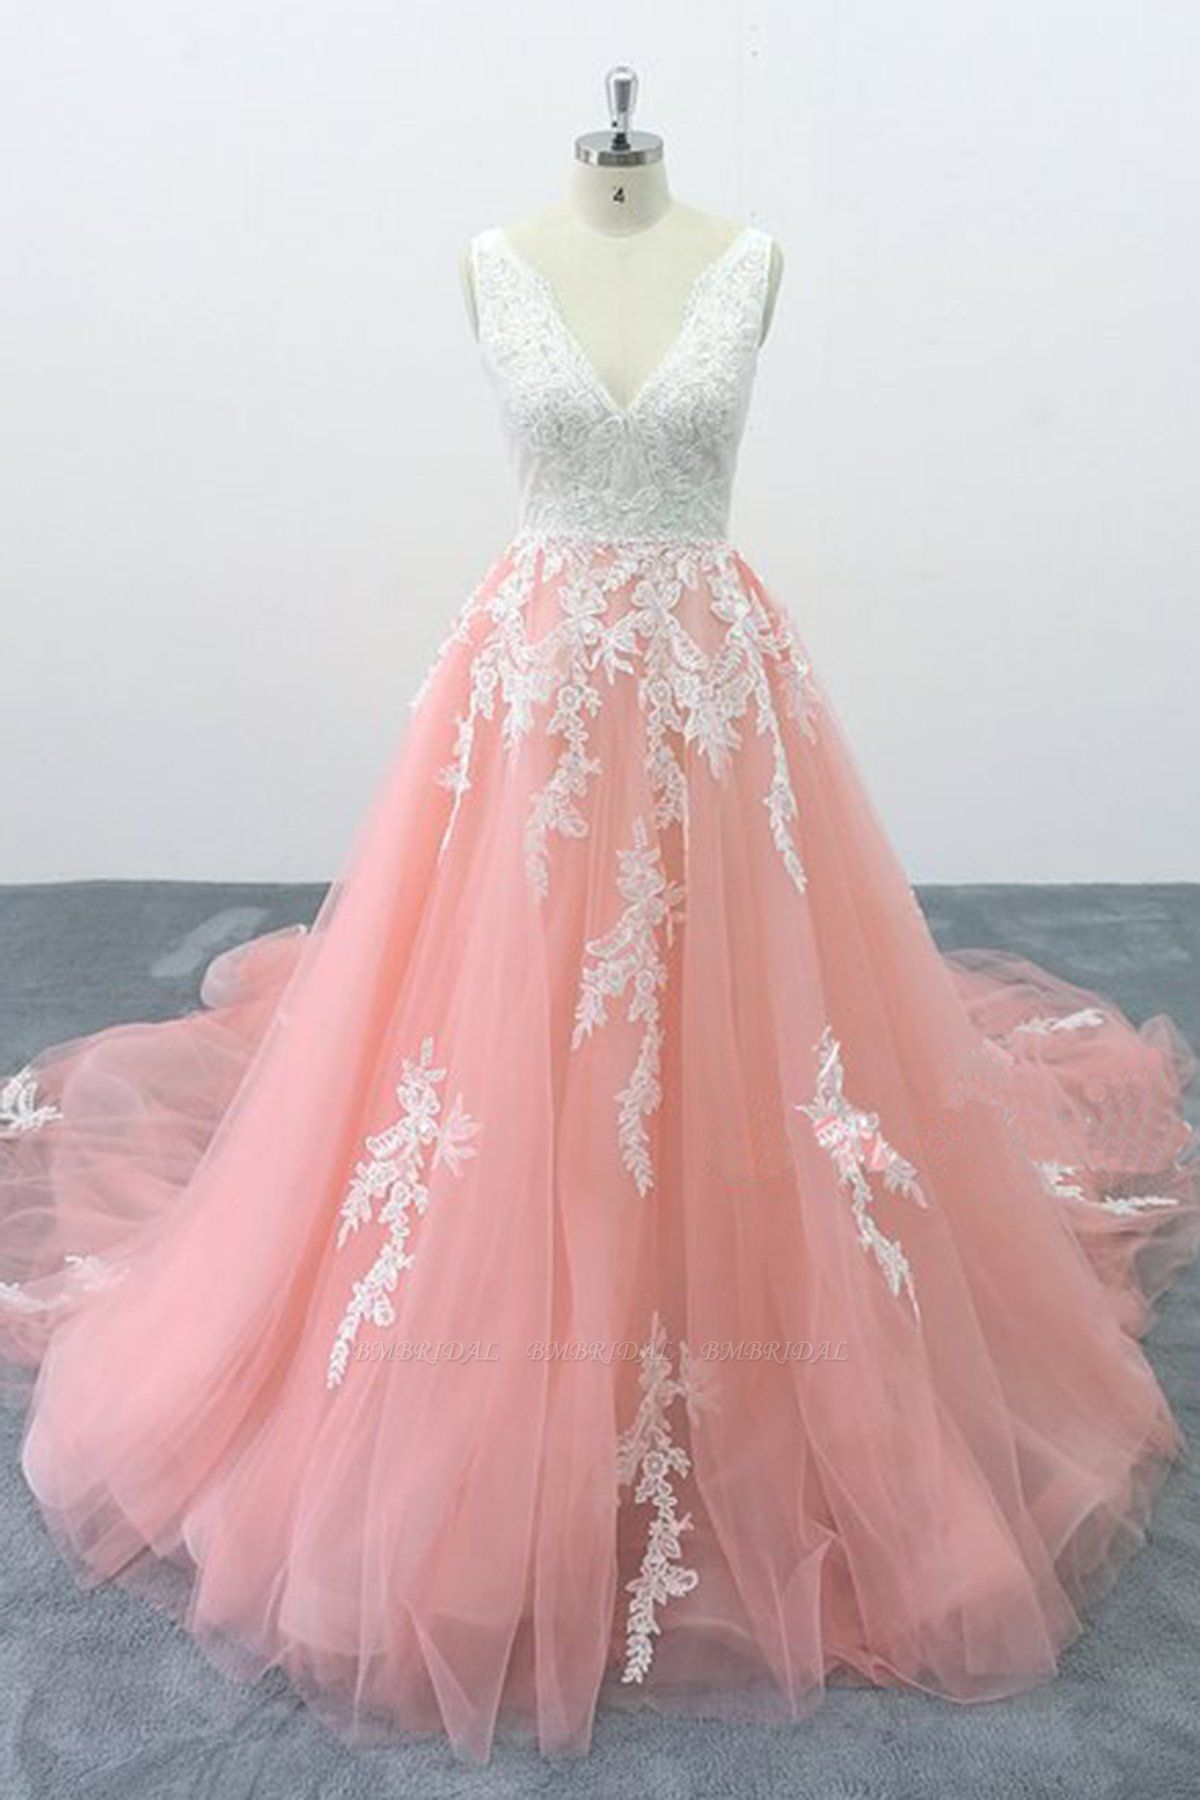 BMbridal Chic Peach Pink Tulle Lace Wedding Dress Cathedral Train Bridal Gowns On Sale